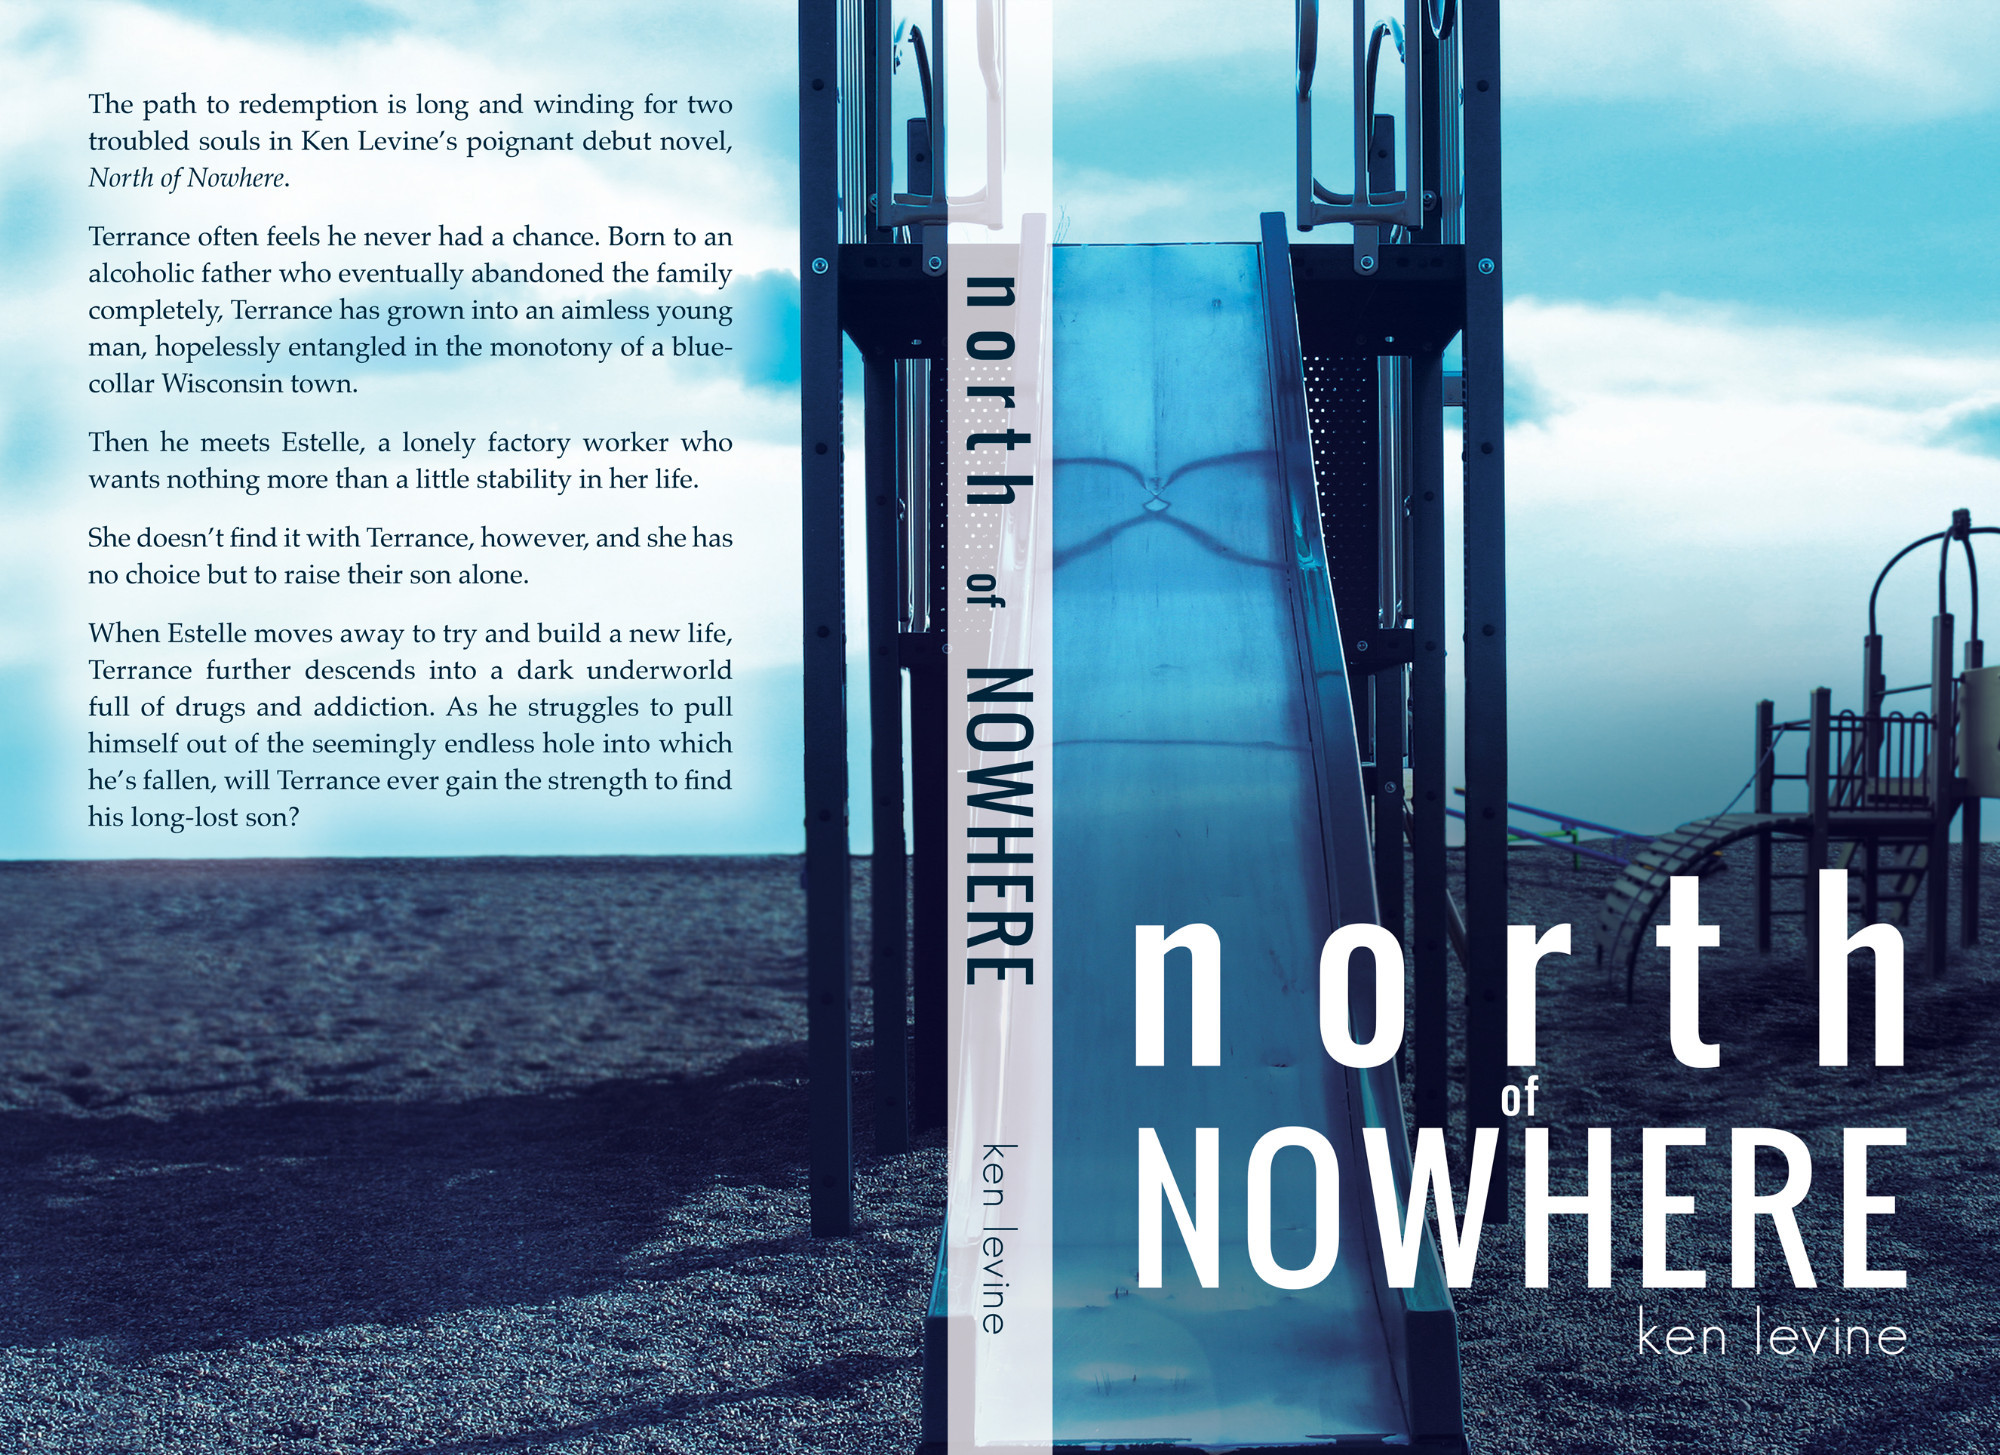 NorthofNowhere_CoverSpread_Final_10714_584-153.jpg